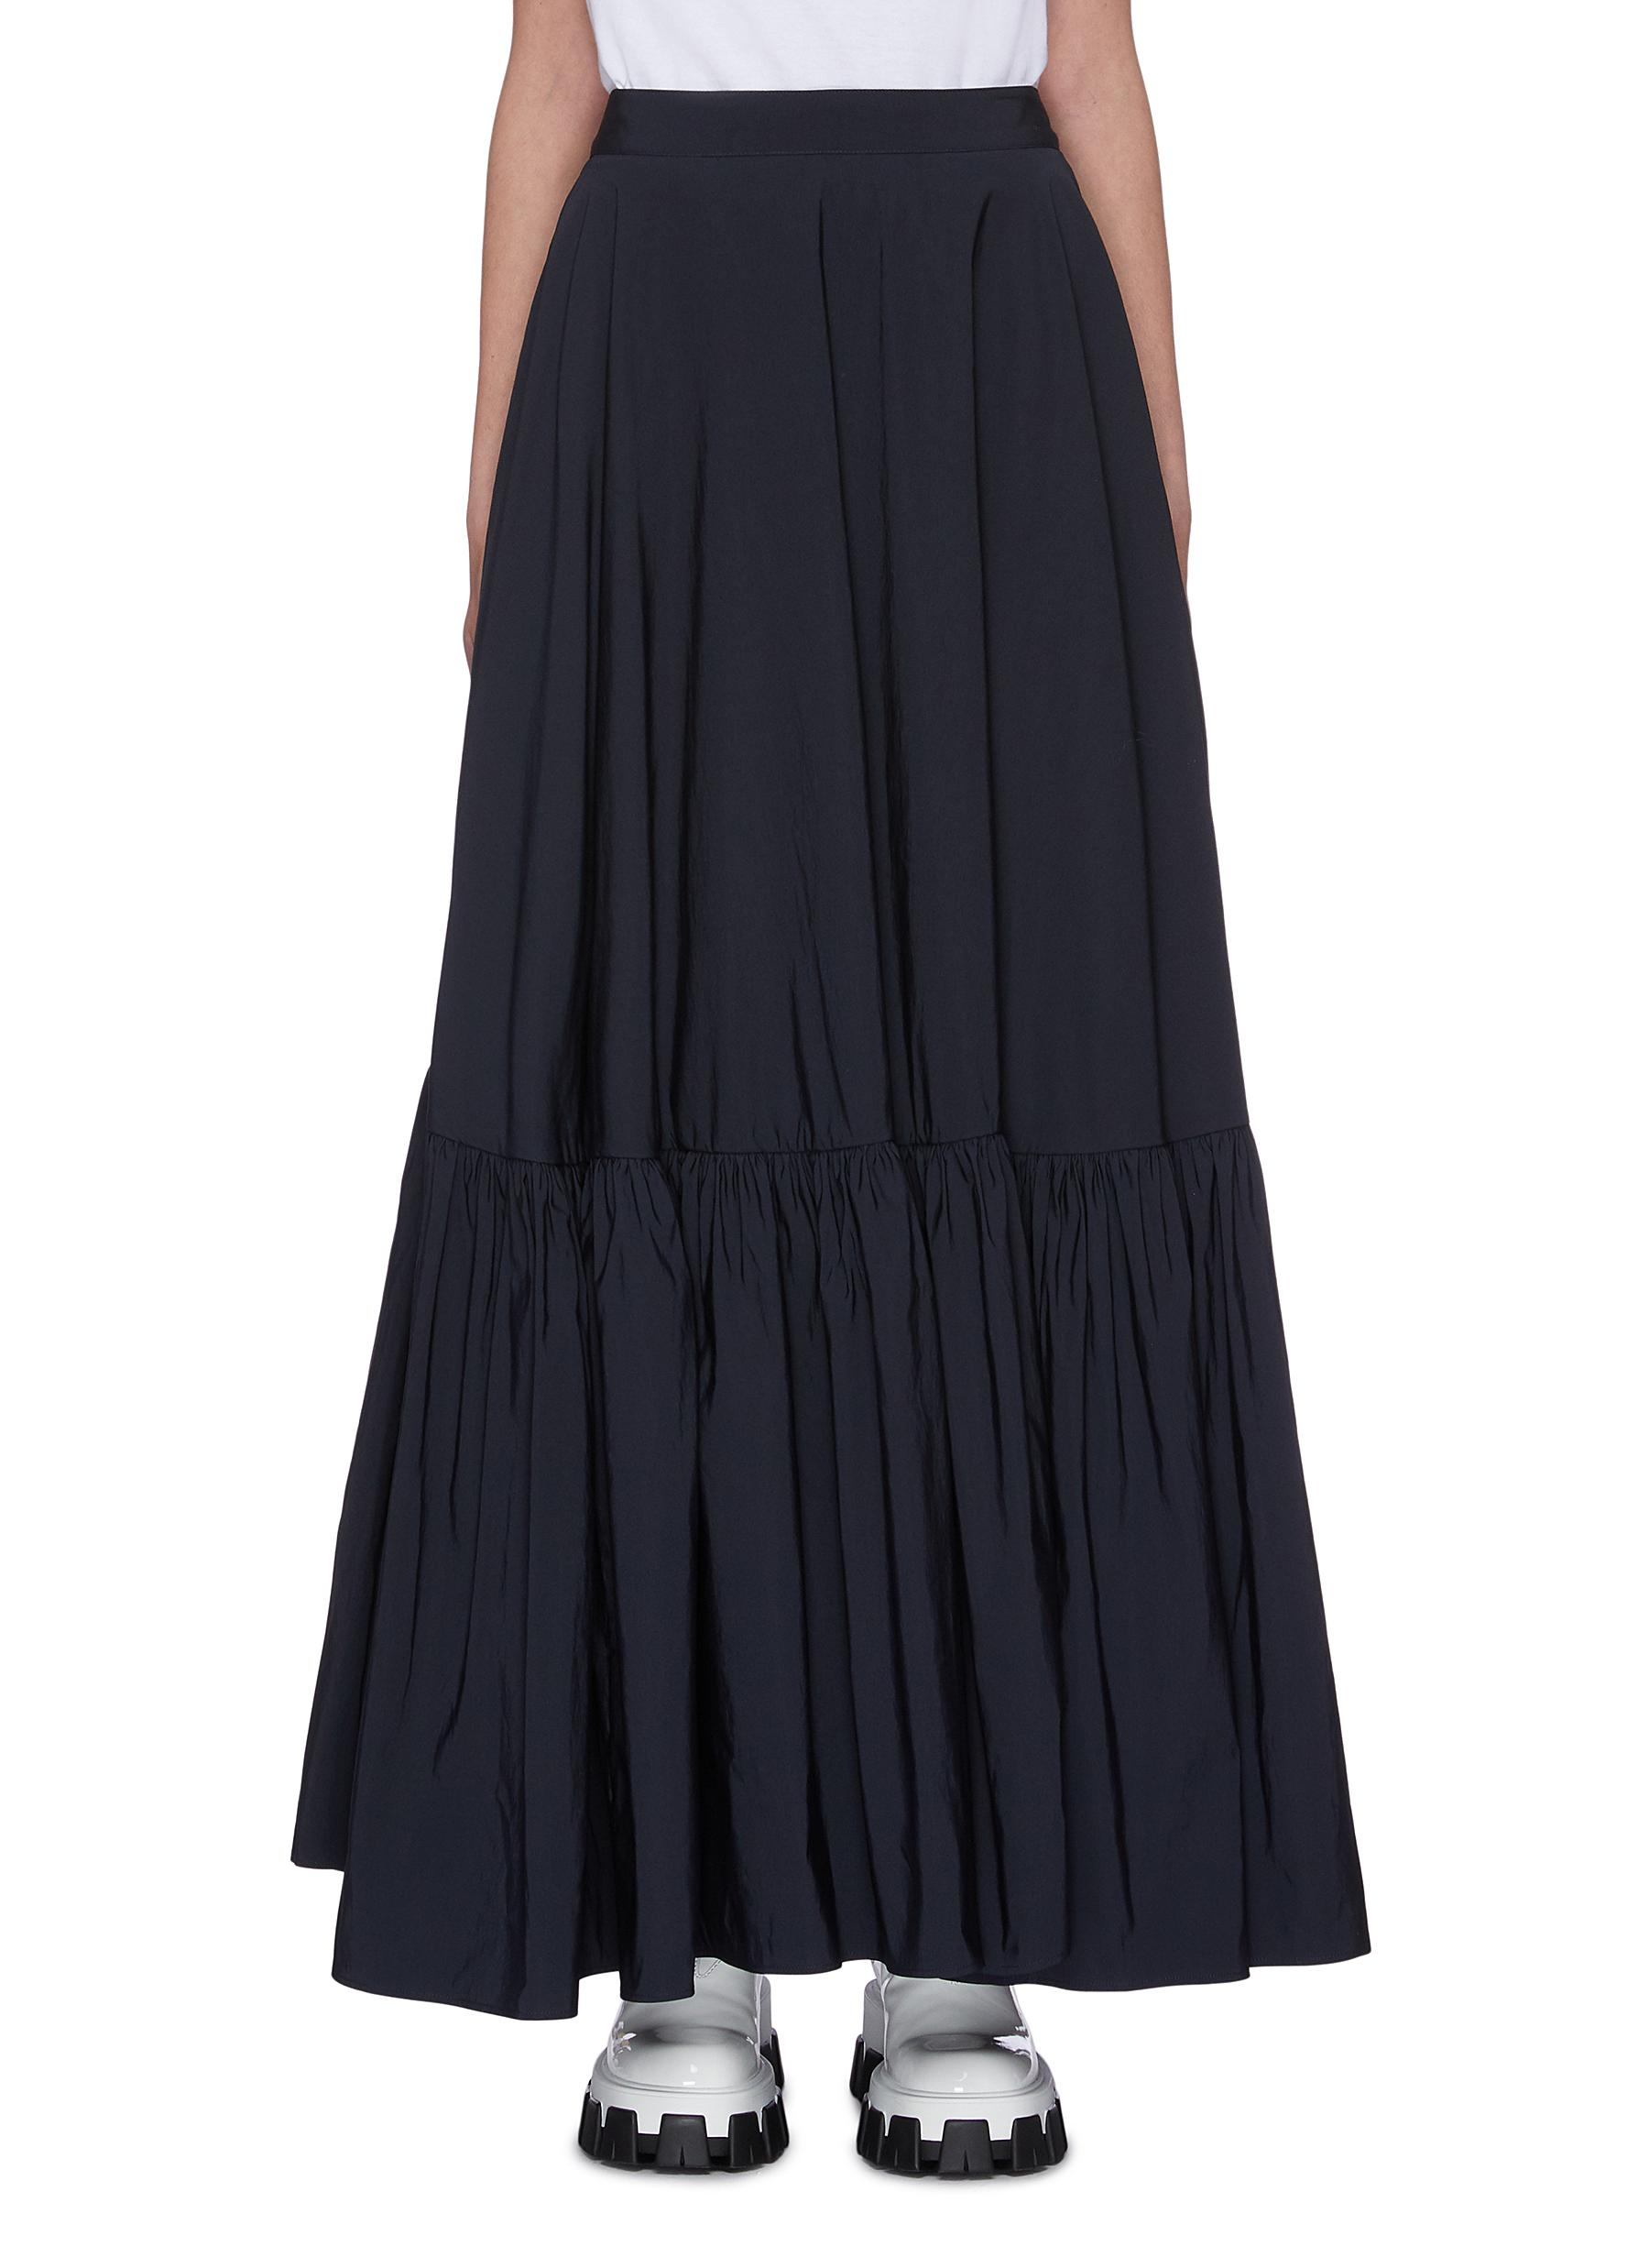 Tiered pleated skirt by Plan C